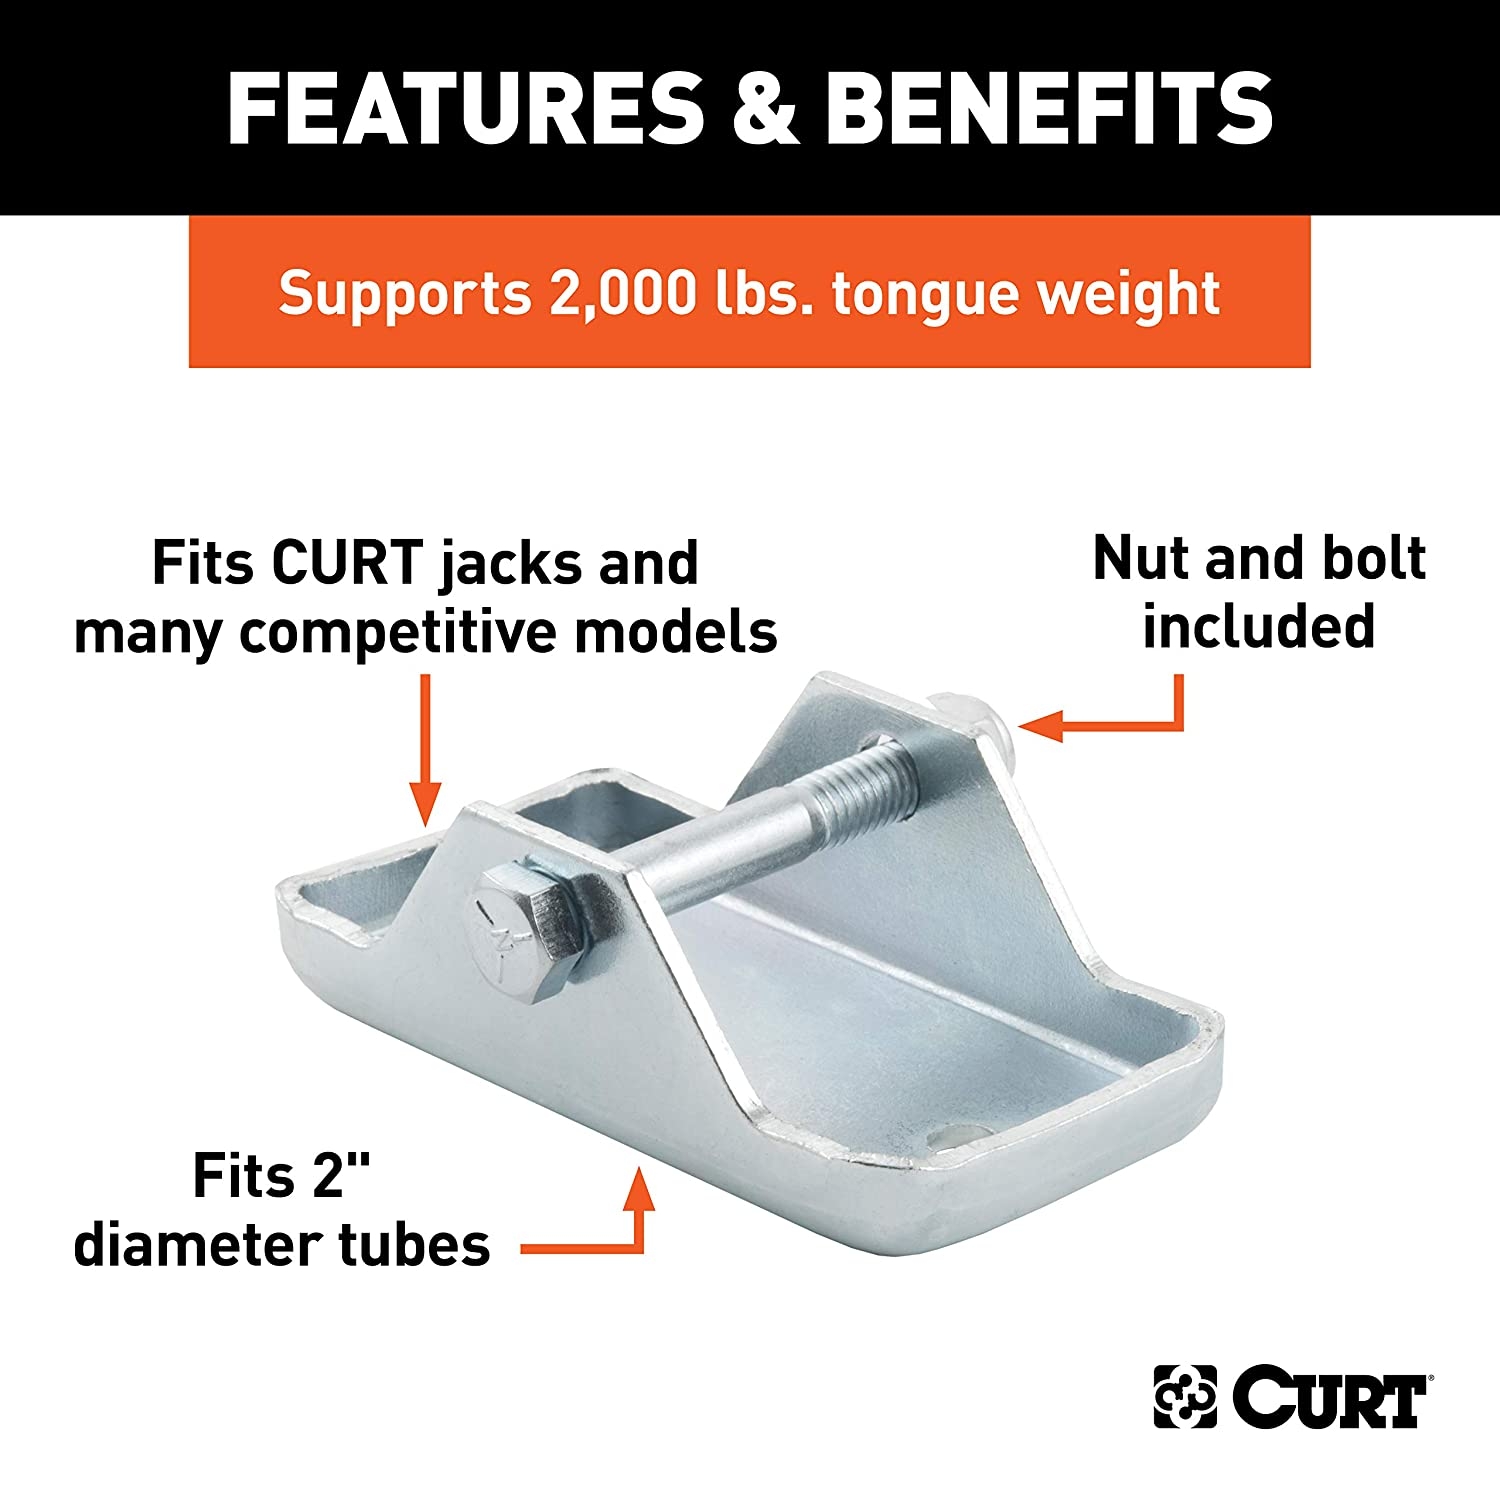 CURT 28271 Trailer Jack Foot Fits 2-Inch Diameter Tube Supports 2,000 lbs.